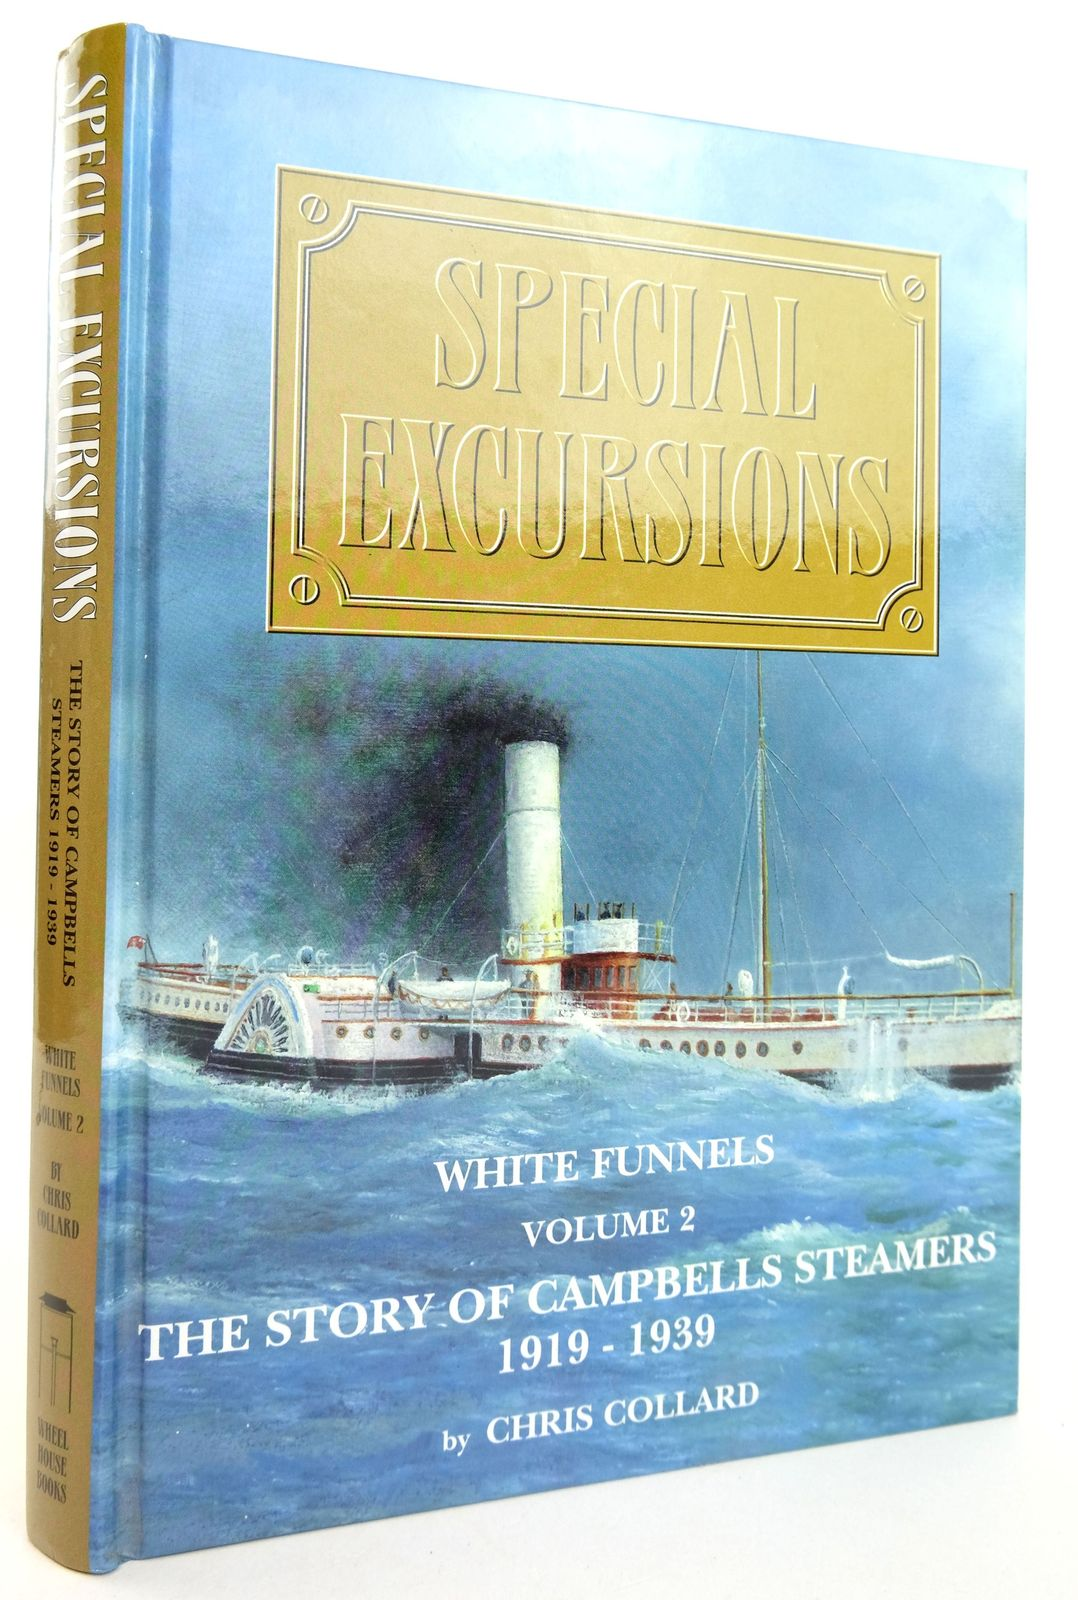 Photo of SPECIAL EXCURSIONS WHITE FUNNELS VOLUME 2- Stock Number: 1819360